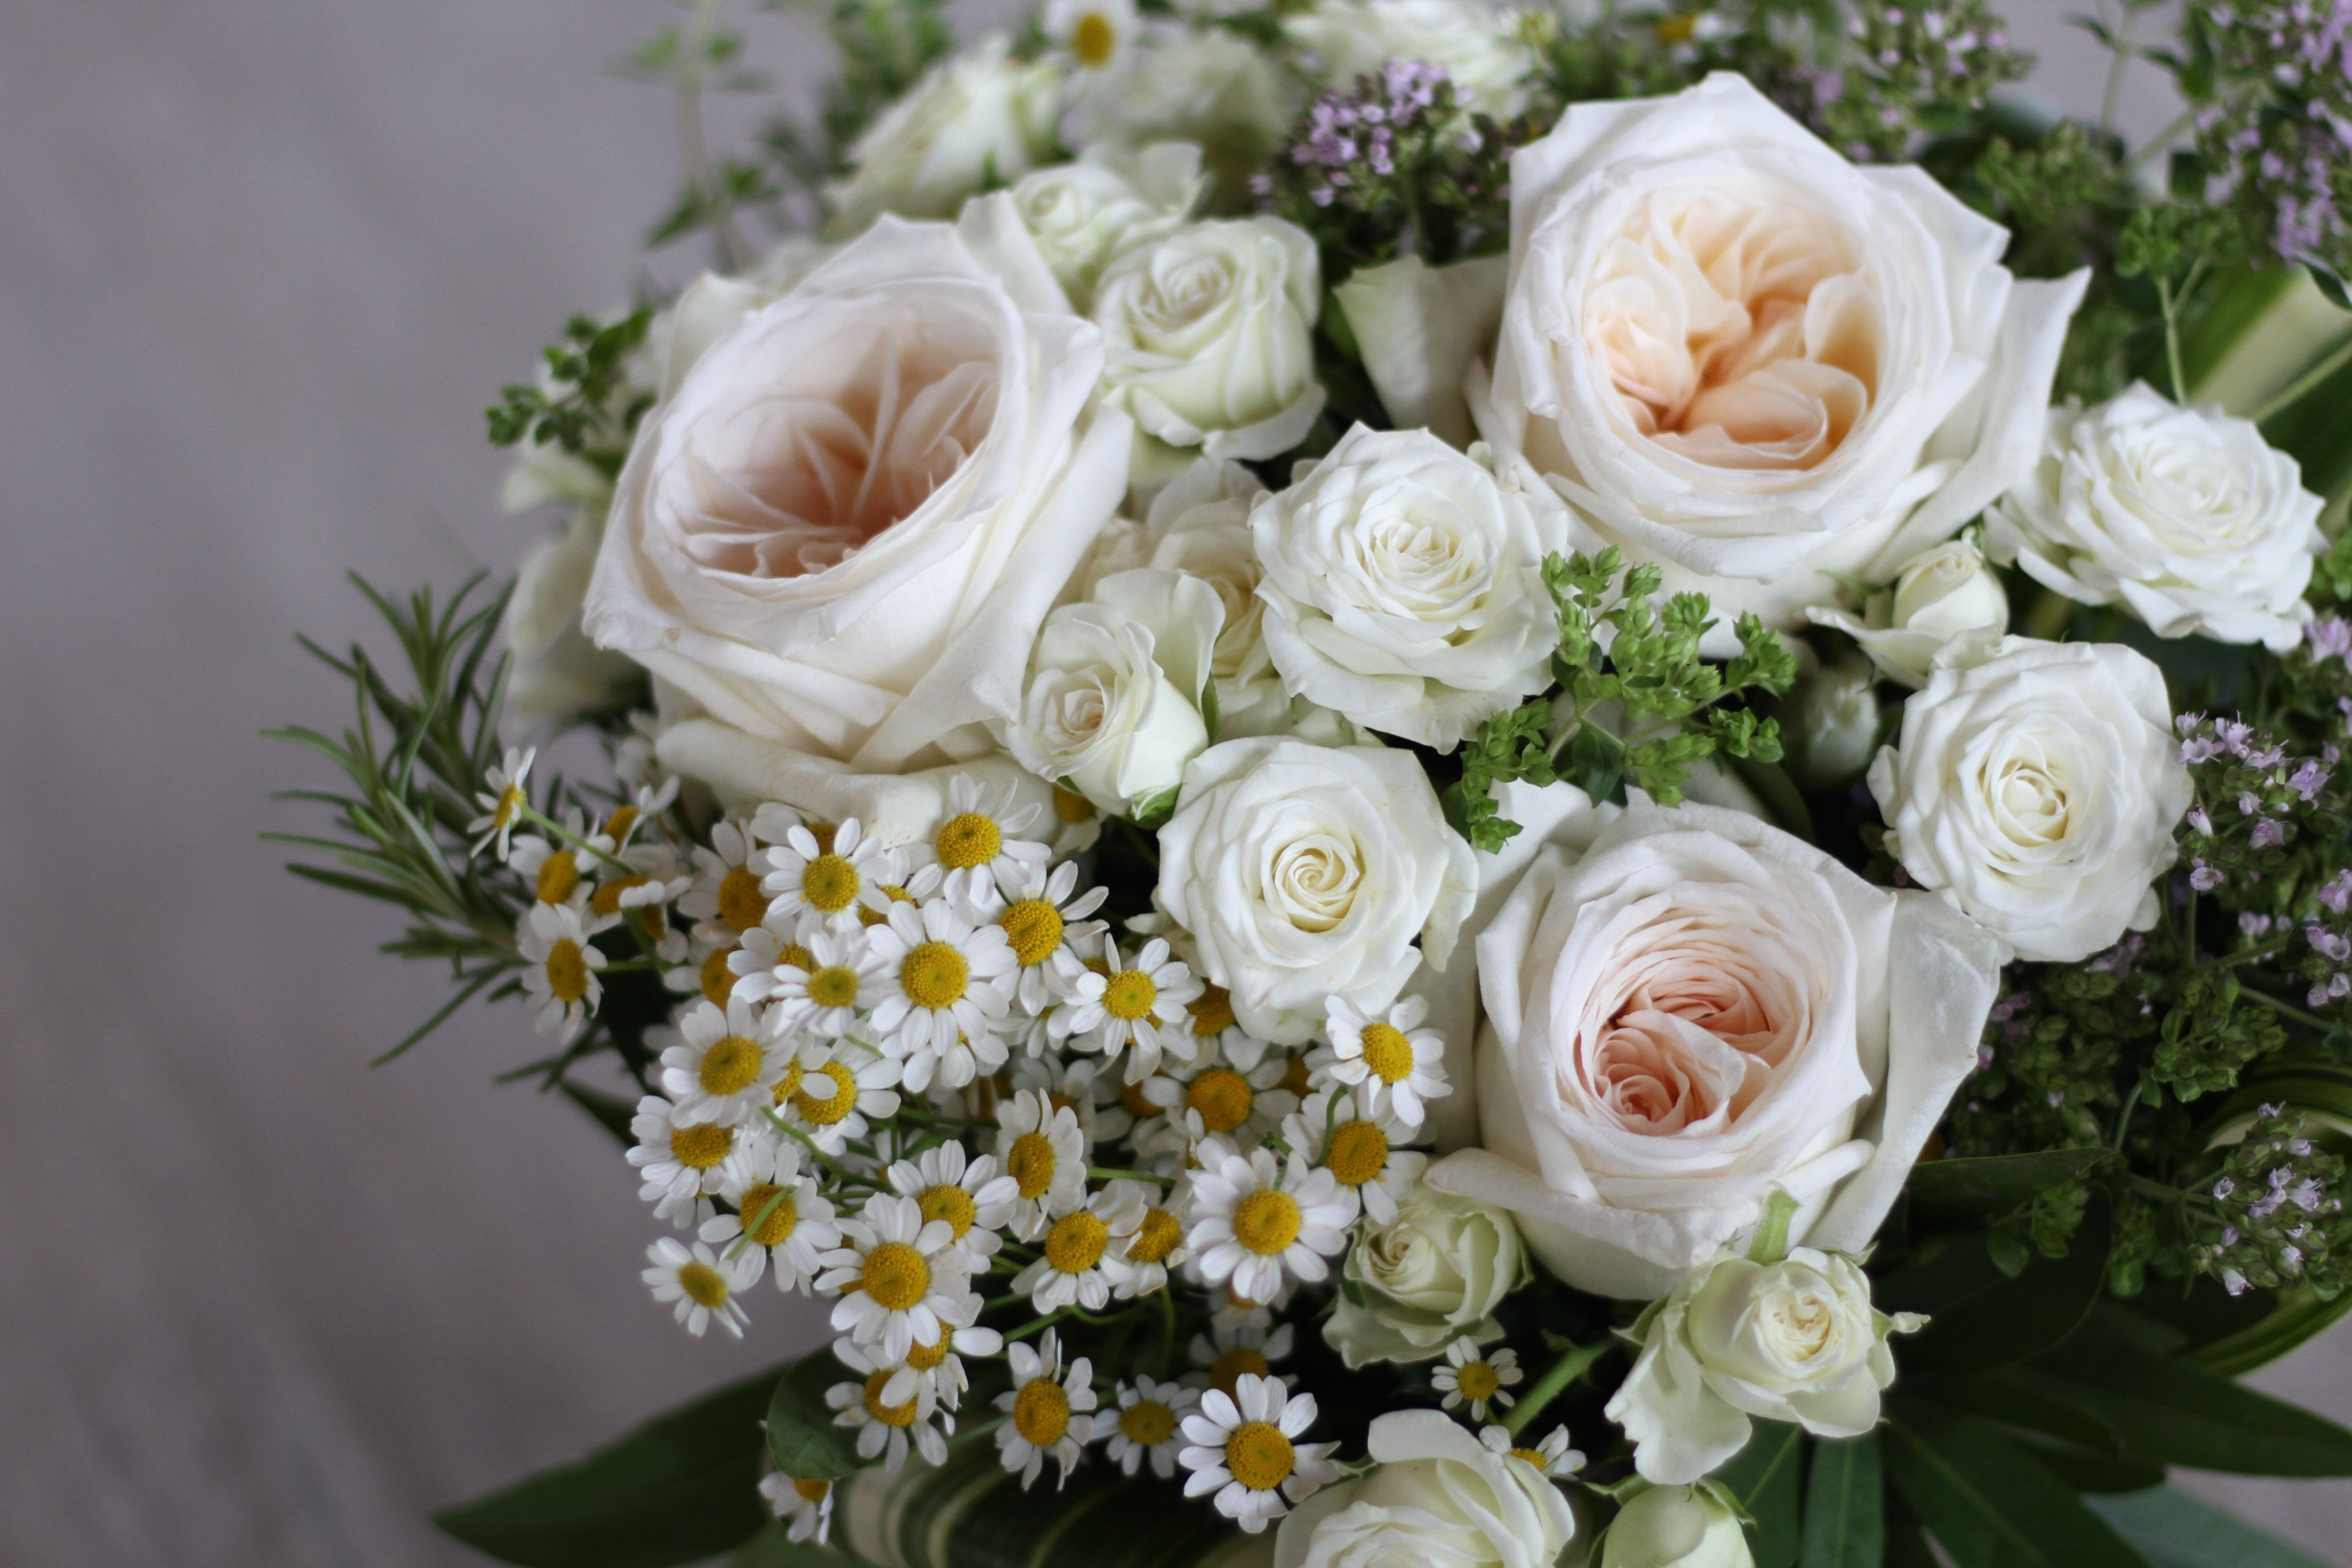 Three Varieties Of Unique White Garden And Spray Roses Chamomile